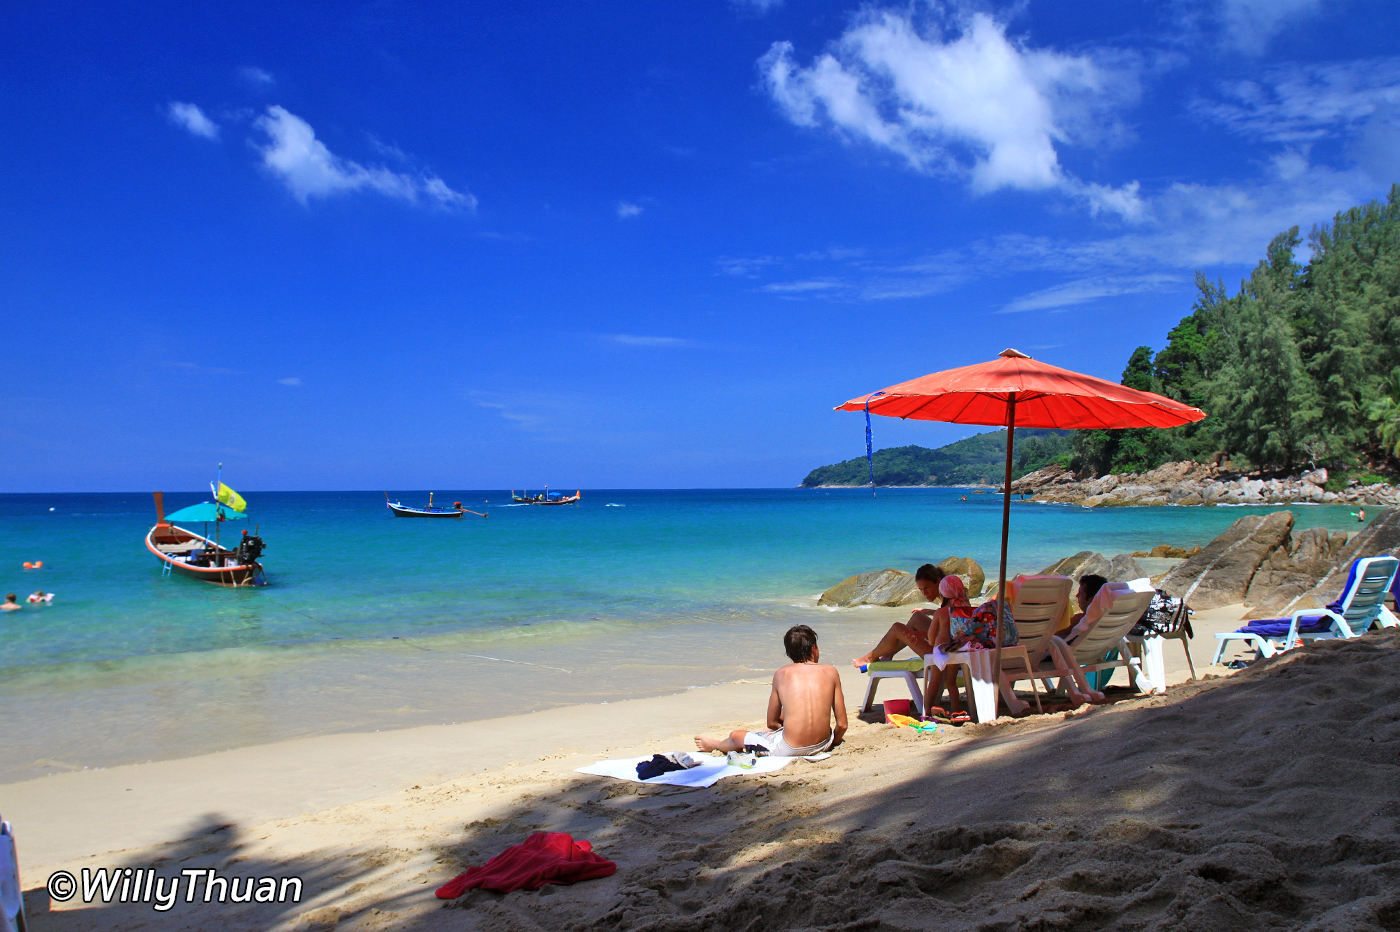 Phuket Beaches – 36 beaches of Phuket! (updated)